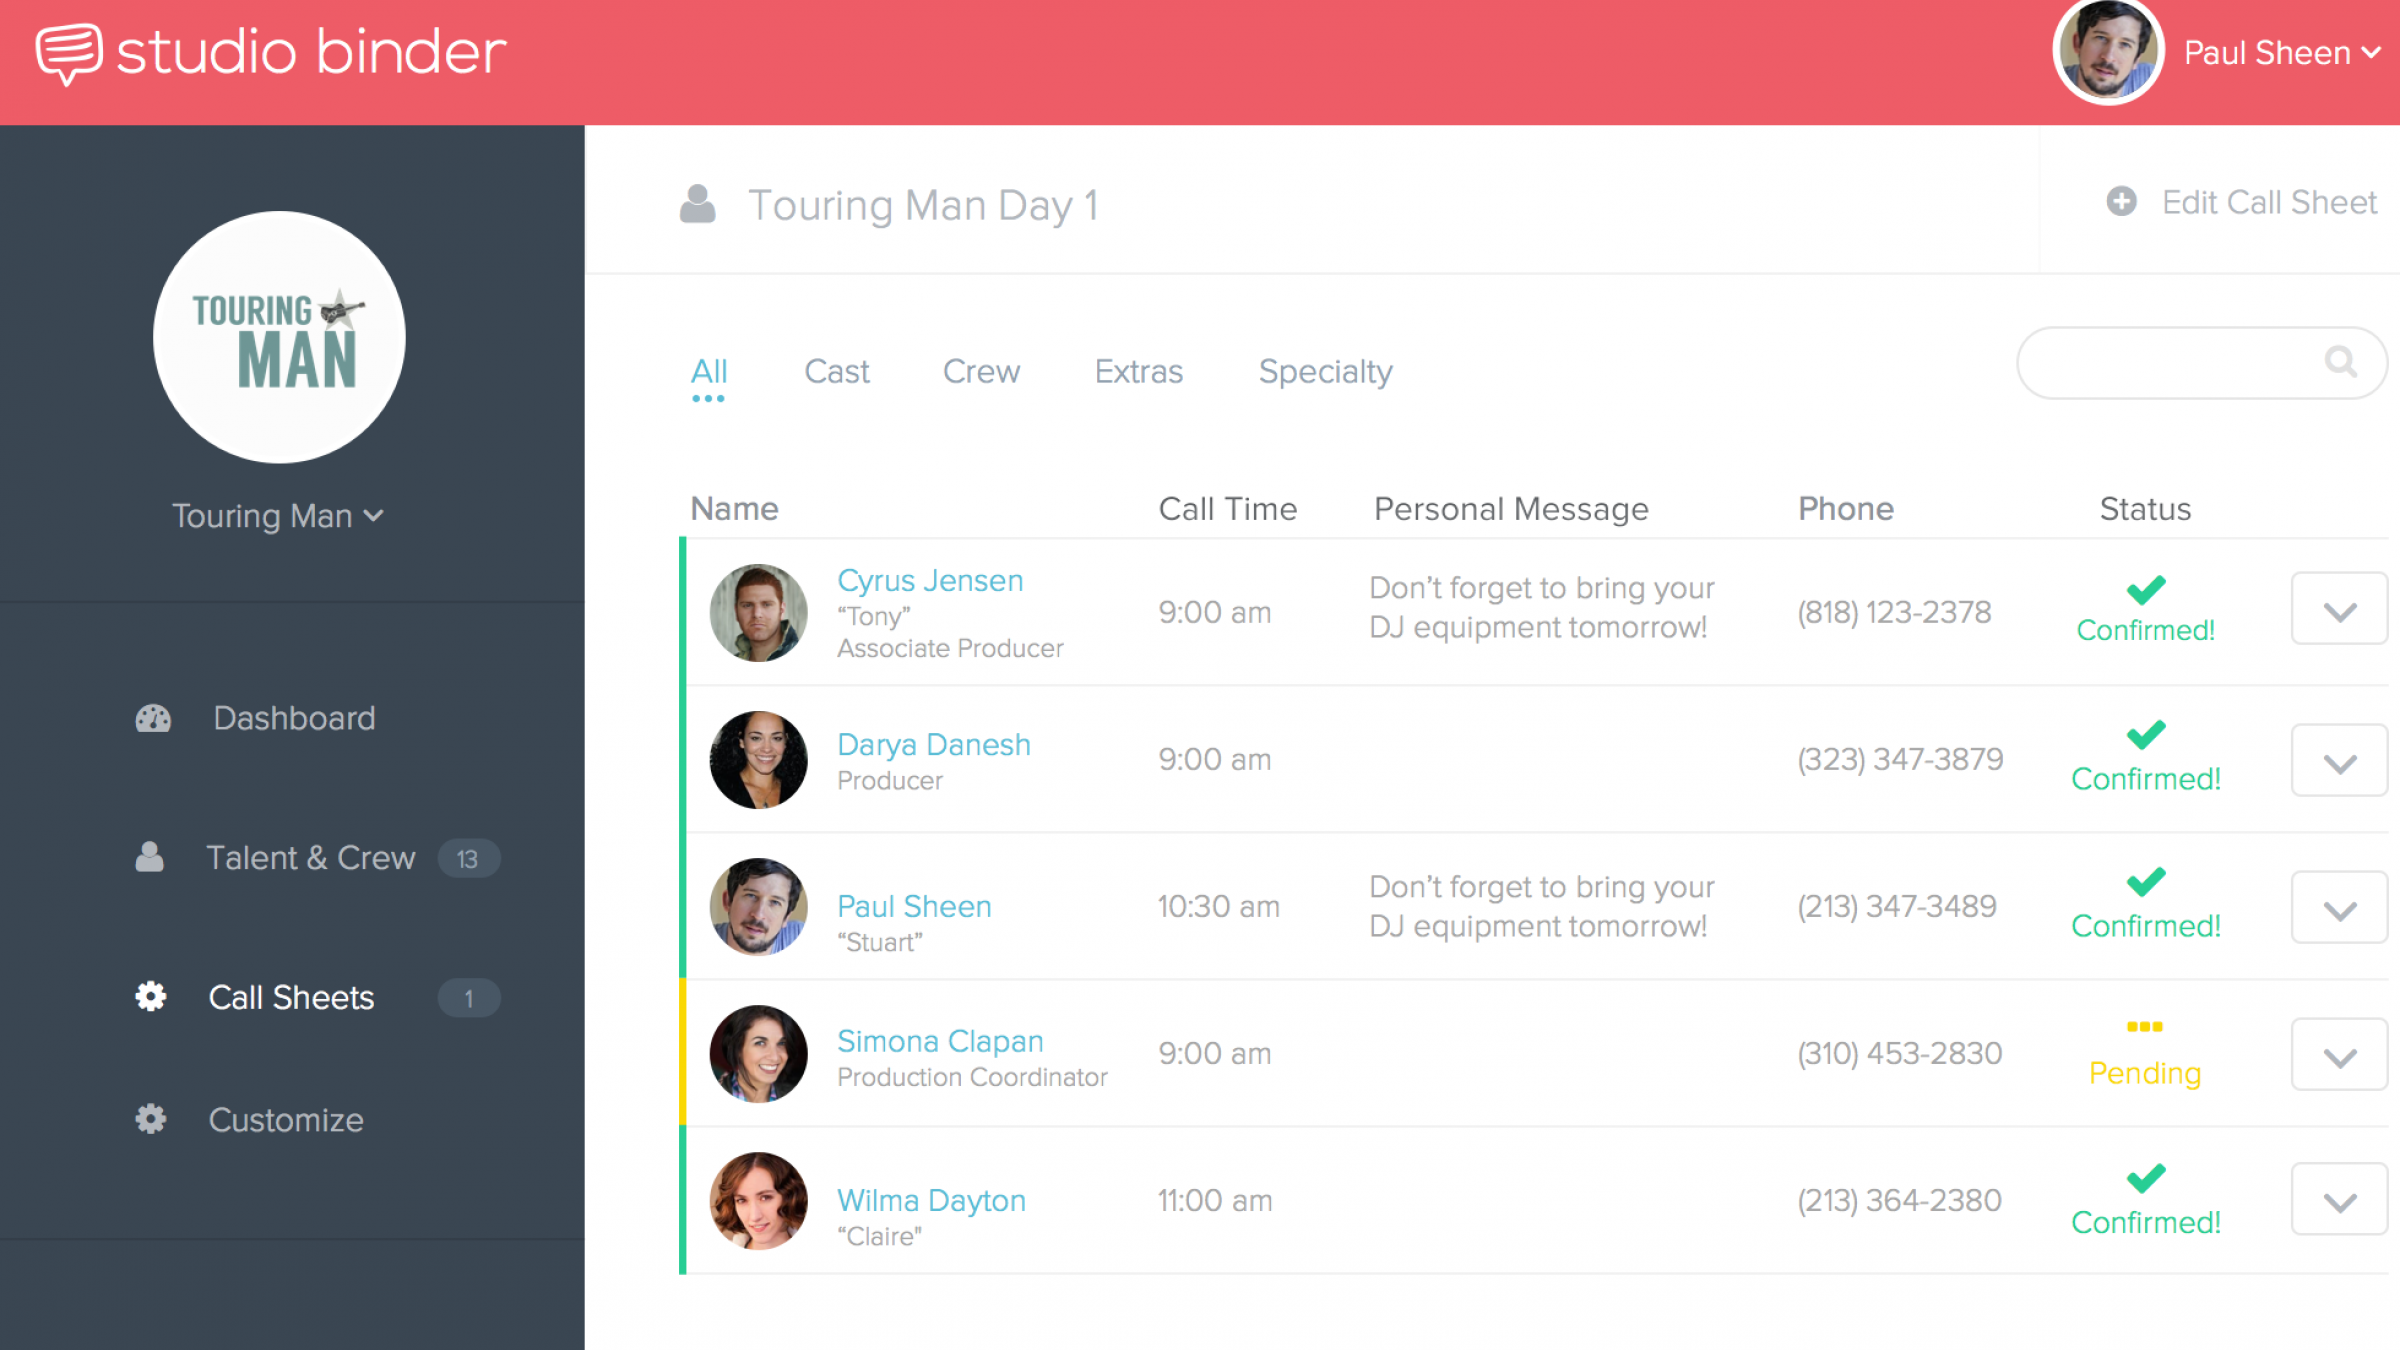 Studio Binder Is Bringing Call Sheets Production Scheduling Into